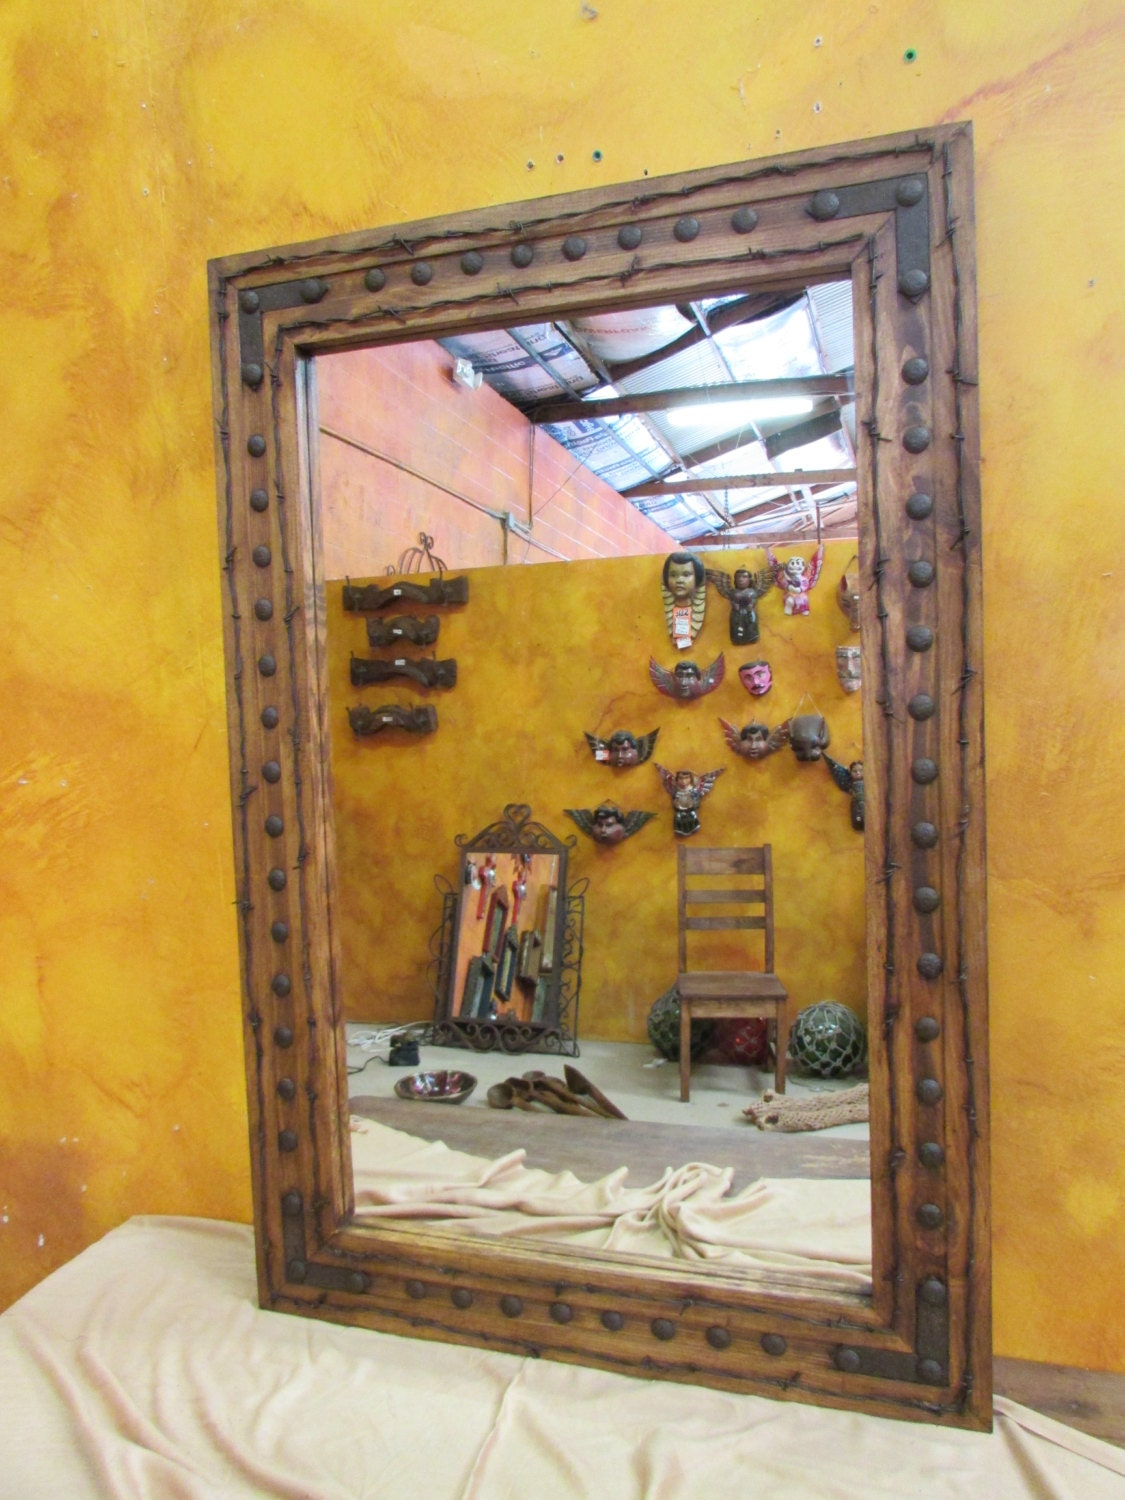 Bathroom Vanity Mirror Rancho Adobe Rustic Mirror 30x45